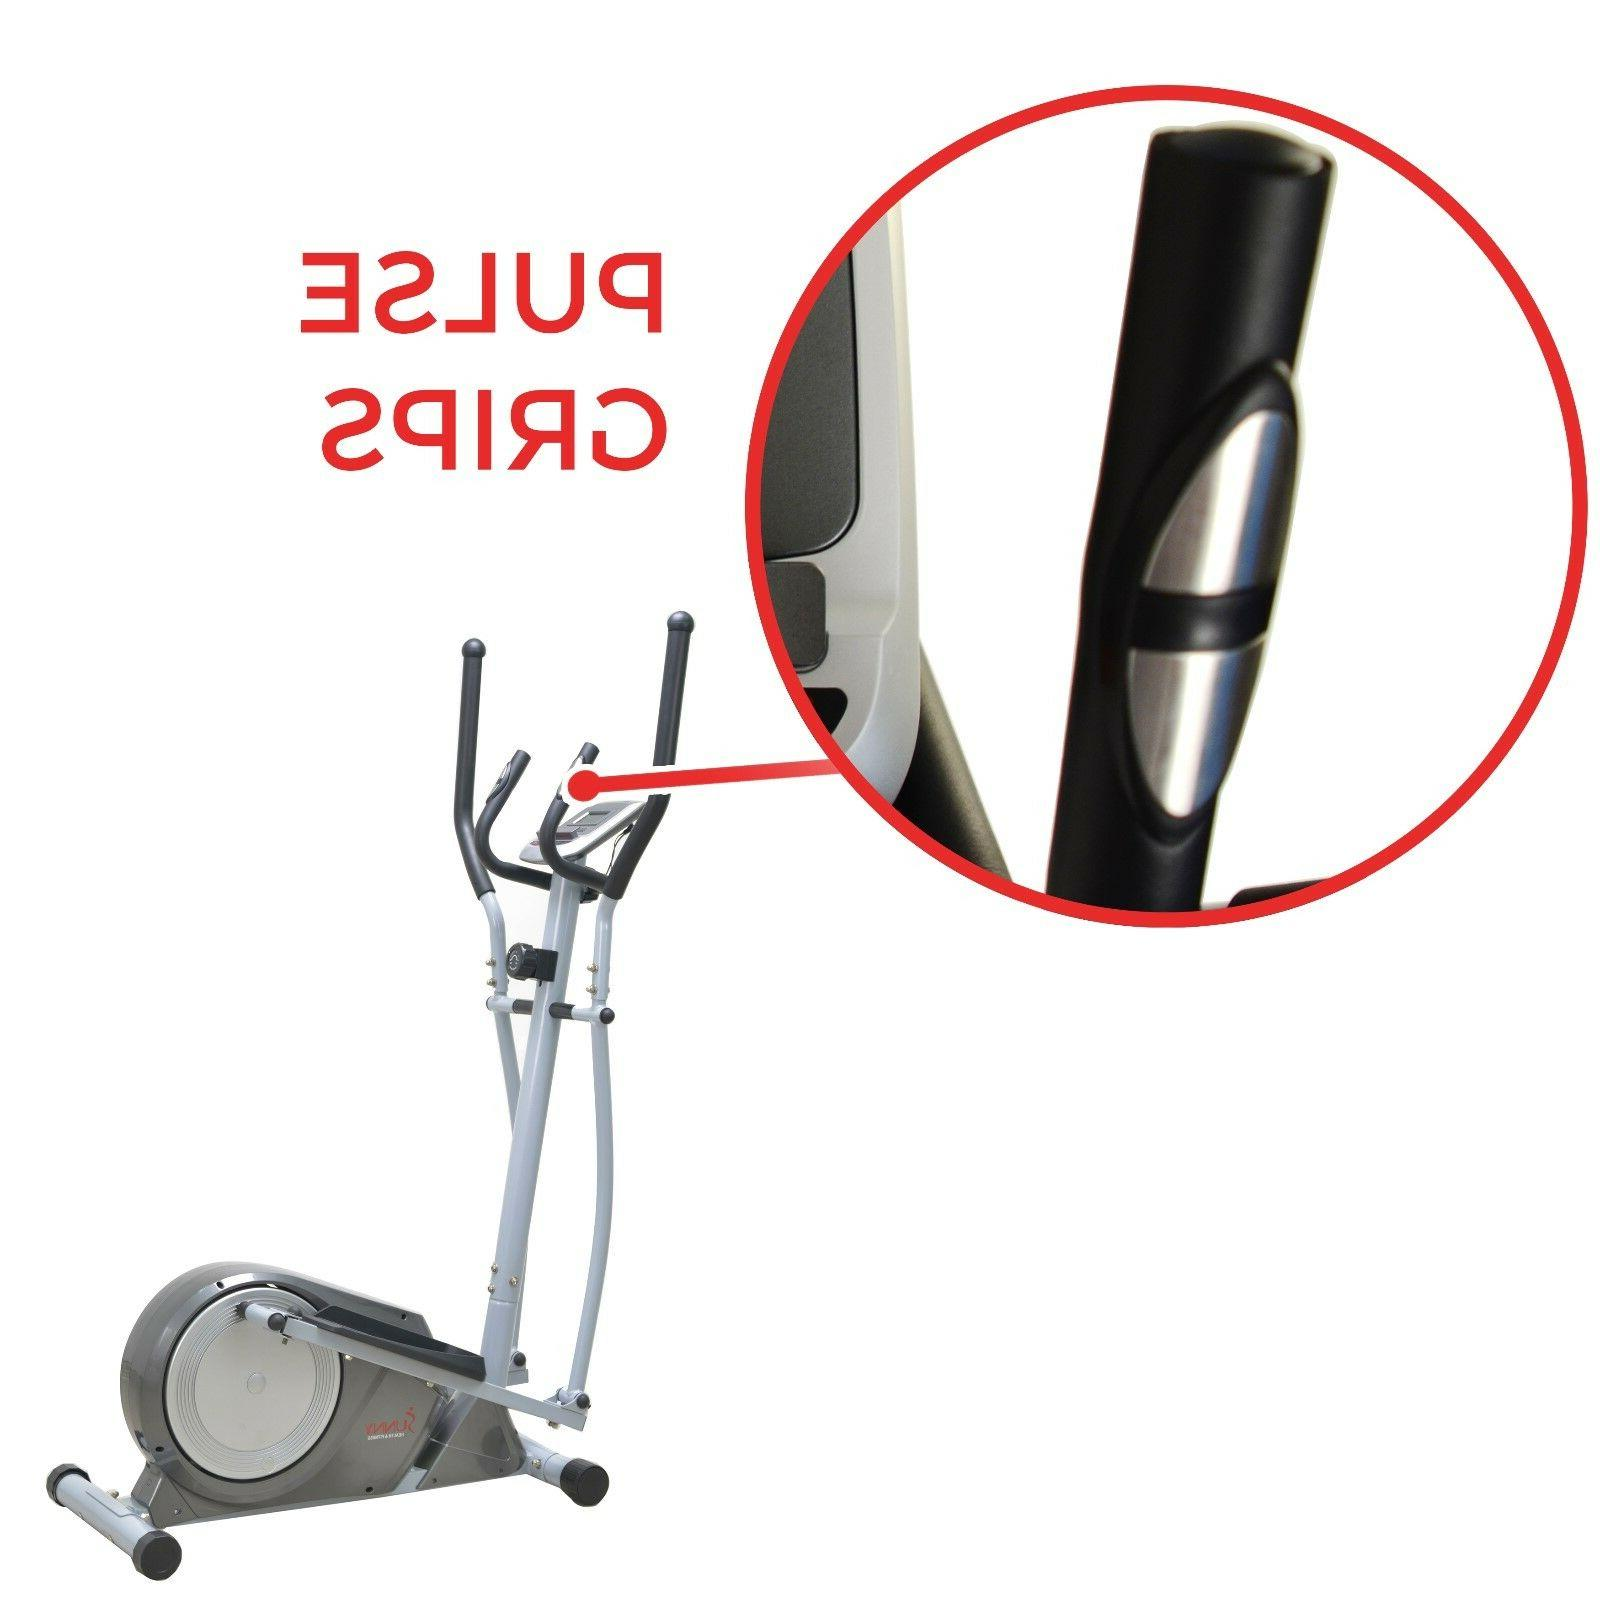 Sunny Health Fitness SF-E3609 Elliptical Trainer